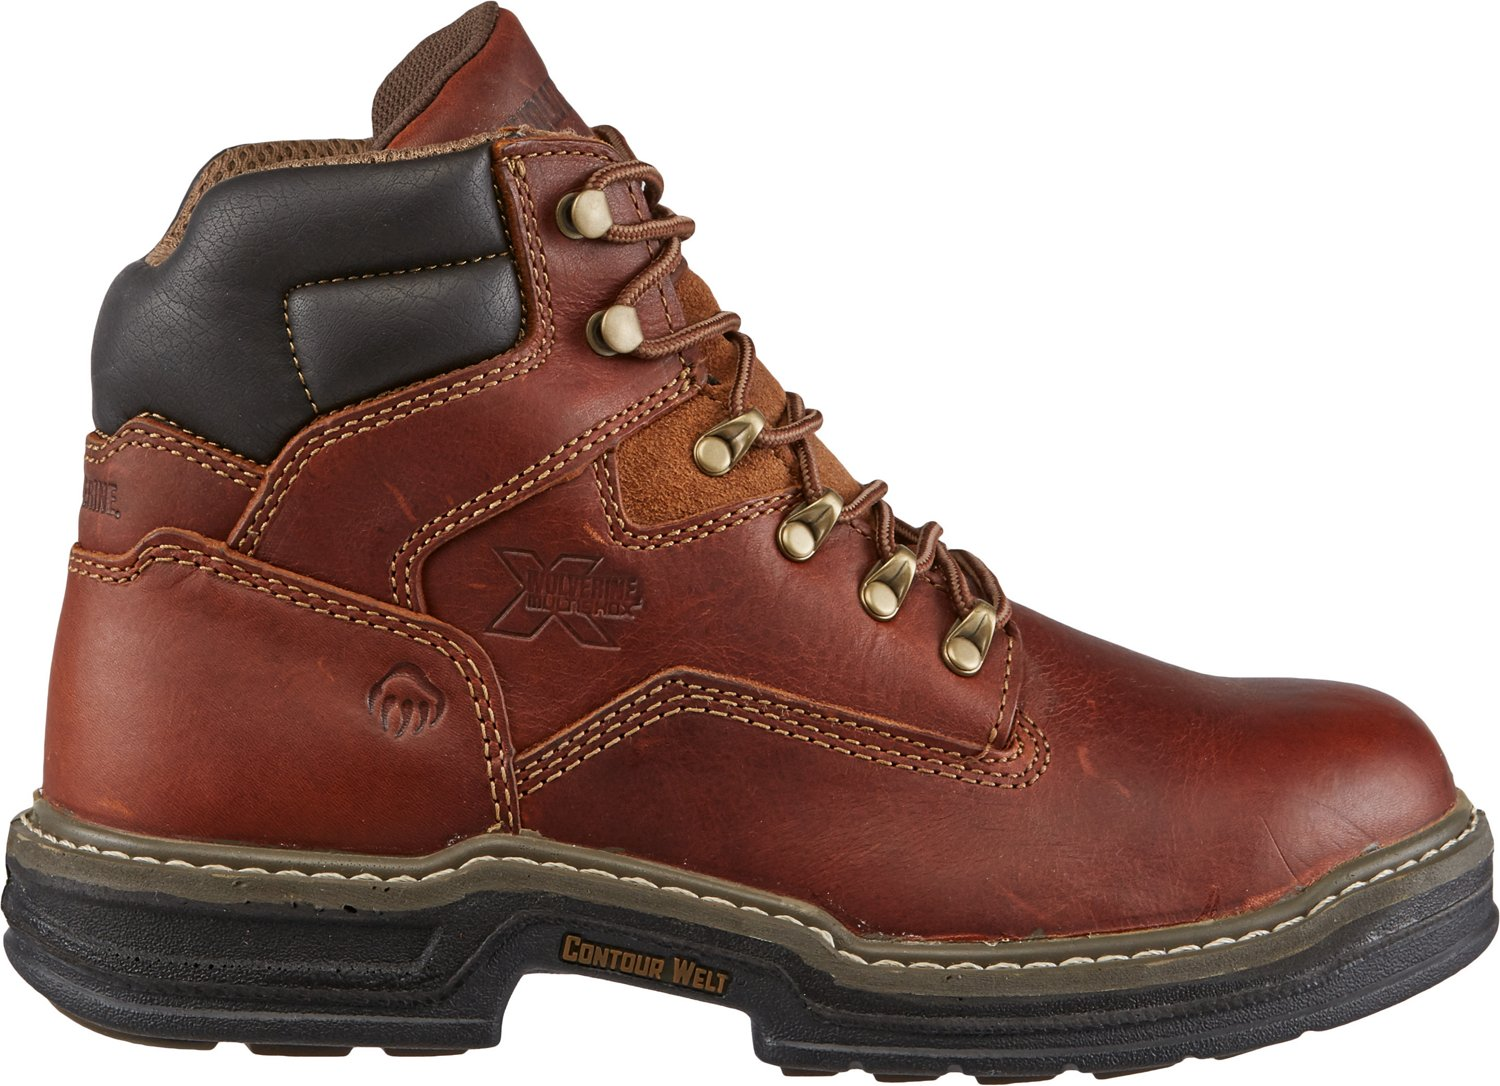 85d6c16d150 Wolverine Raider Men's MultiShox Contour Welt 6 in EH Lace Up Work Boots